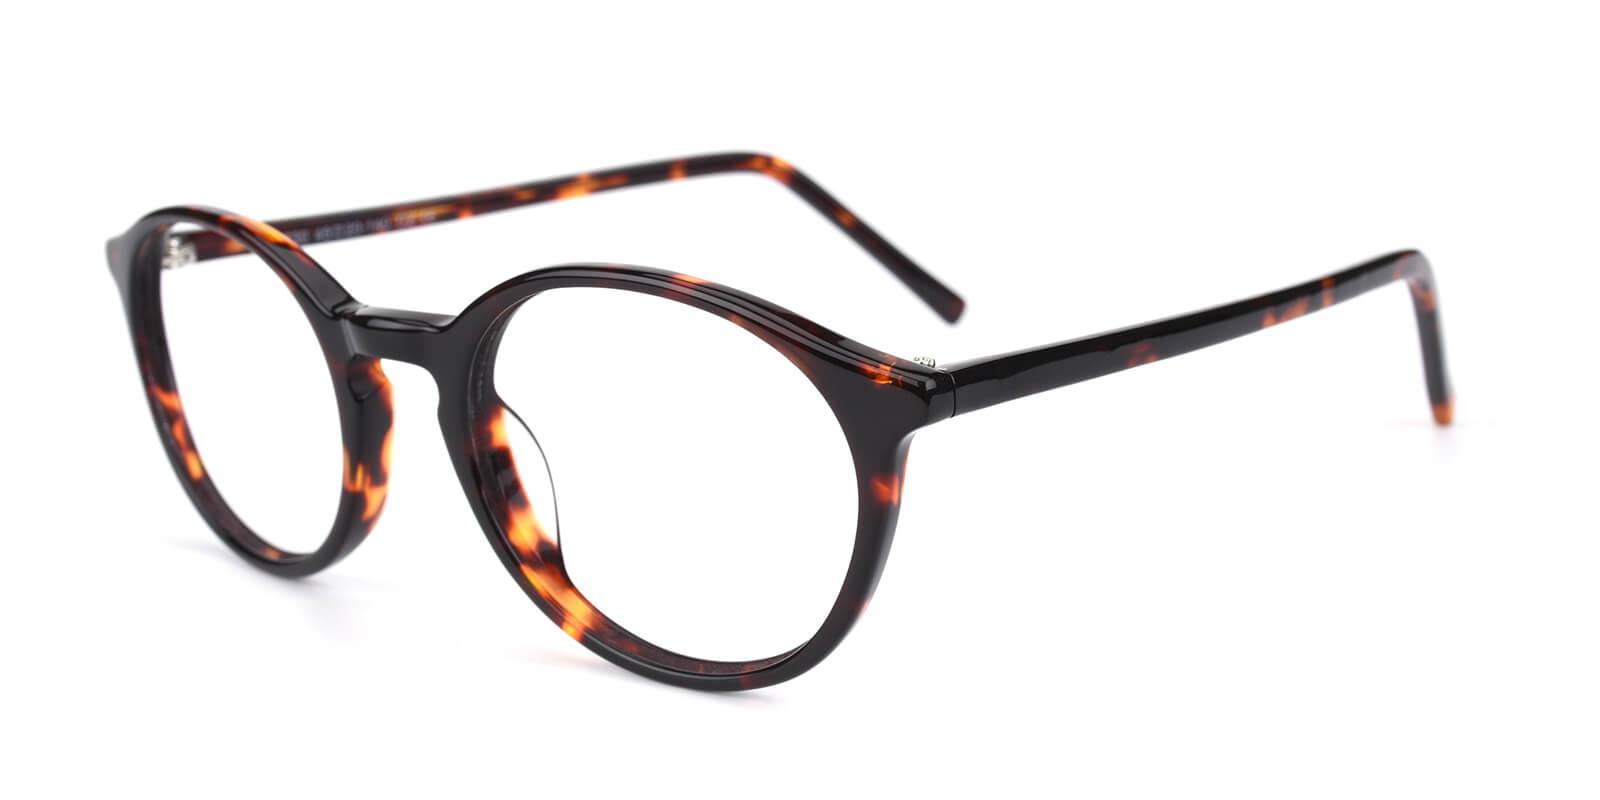 Herbel-Tortoise-Round-Acetate-Eyeglasses-additional1